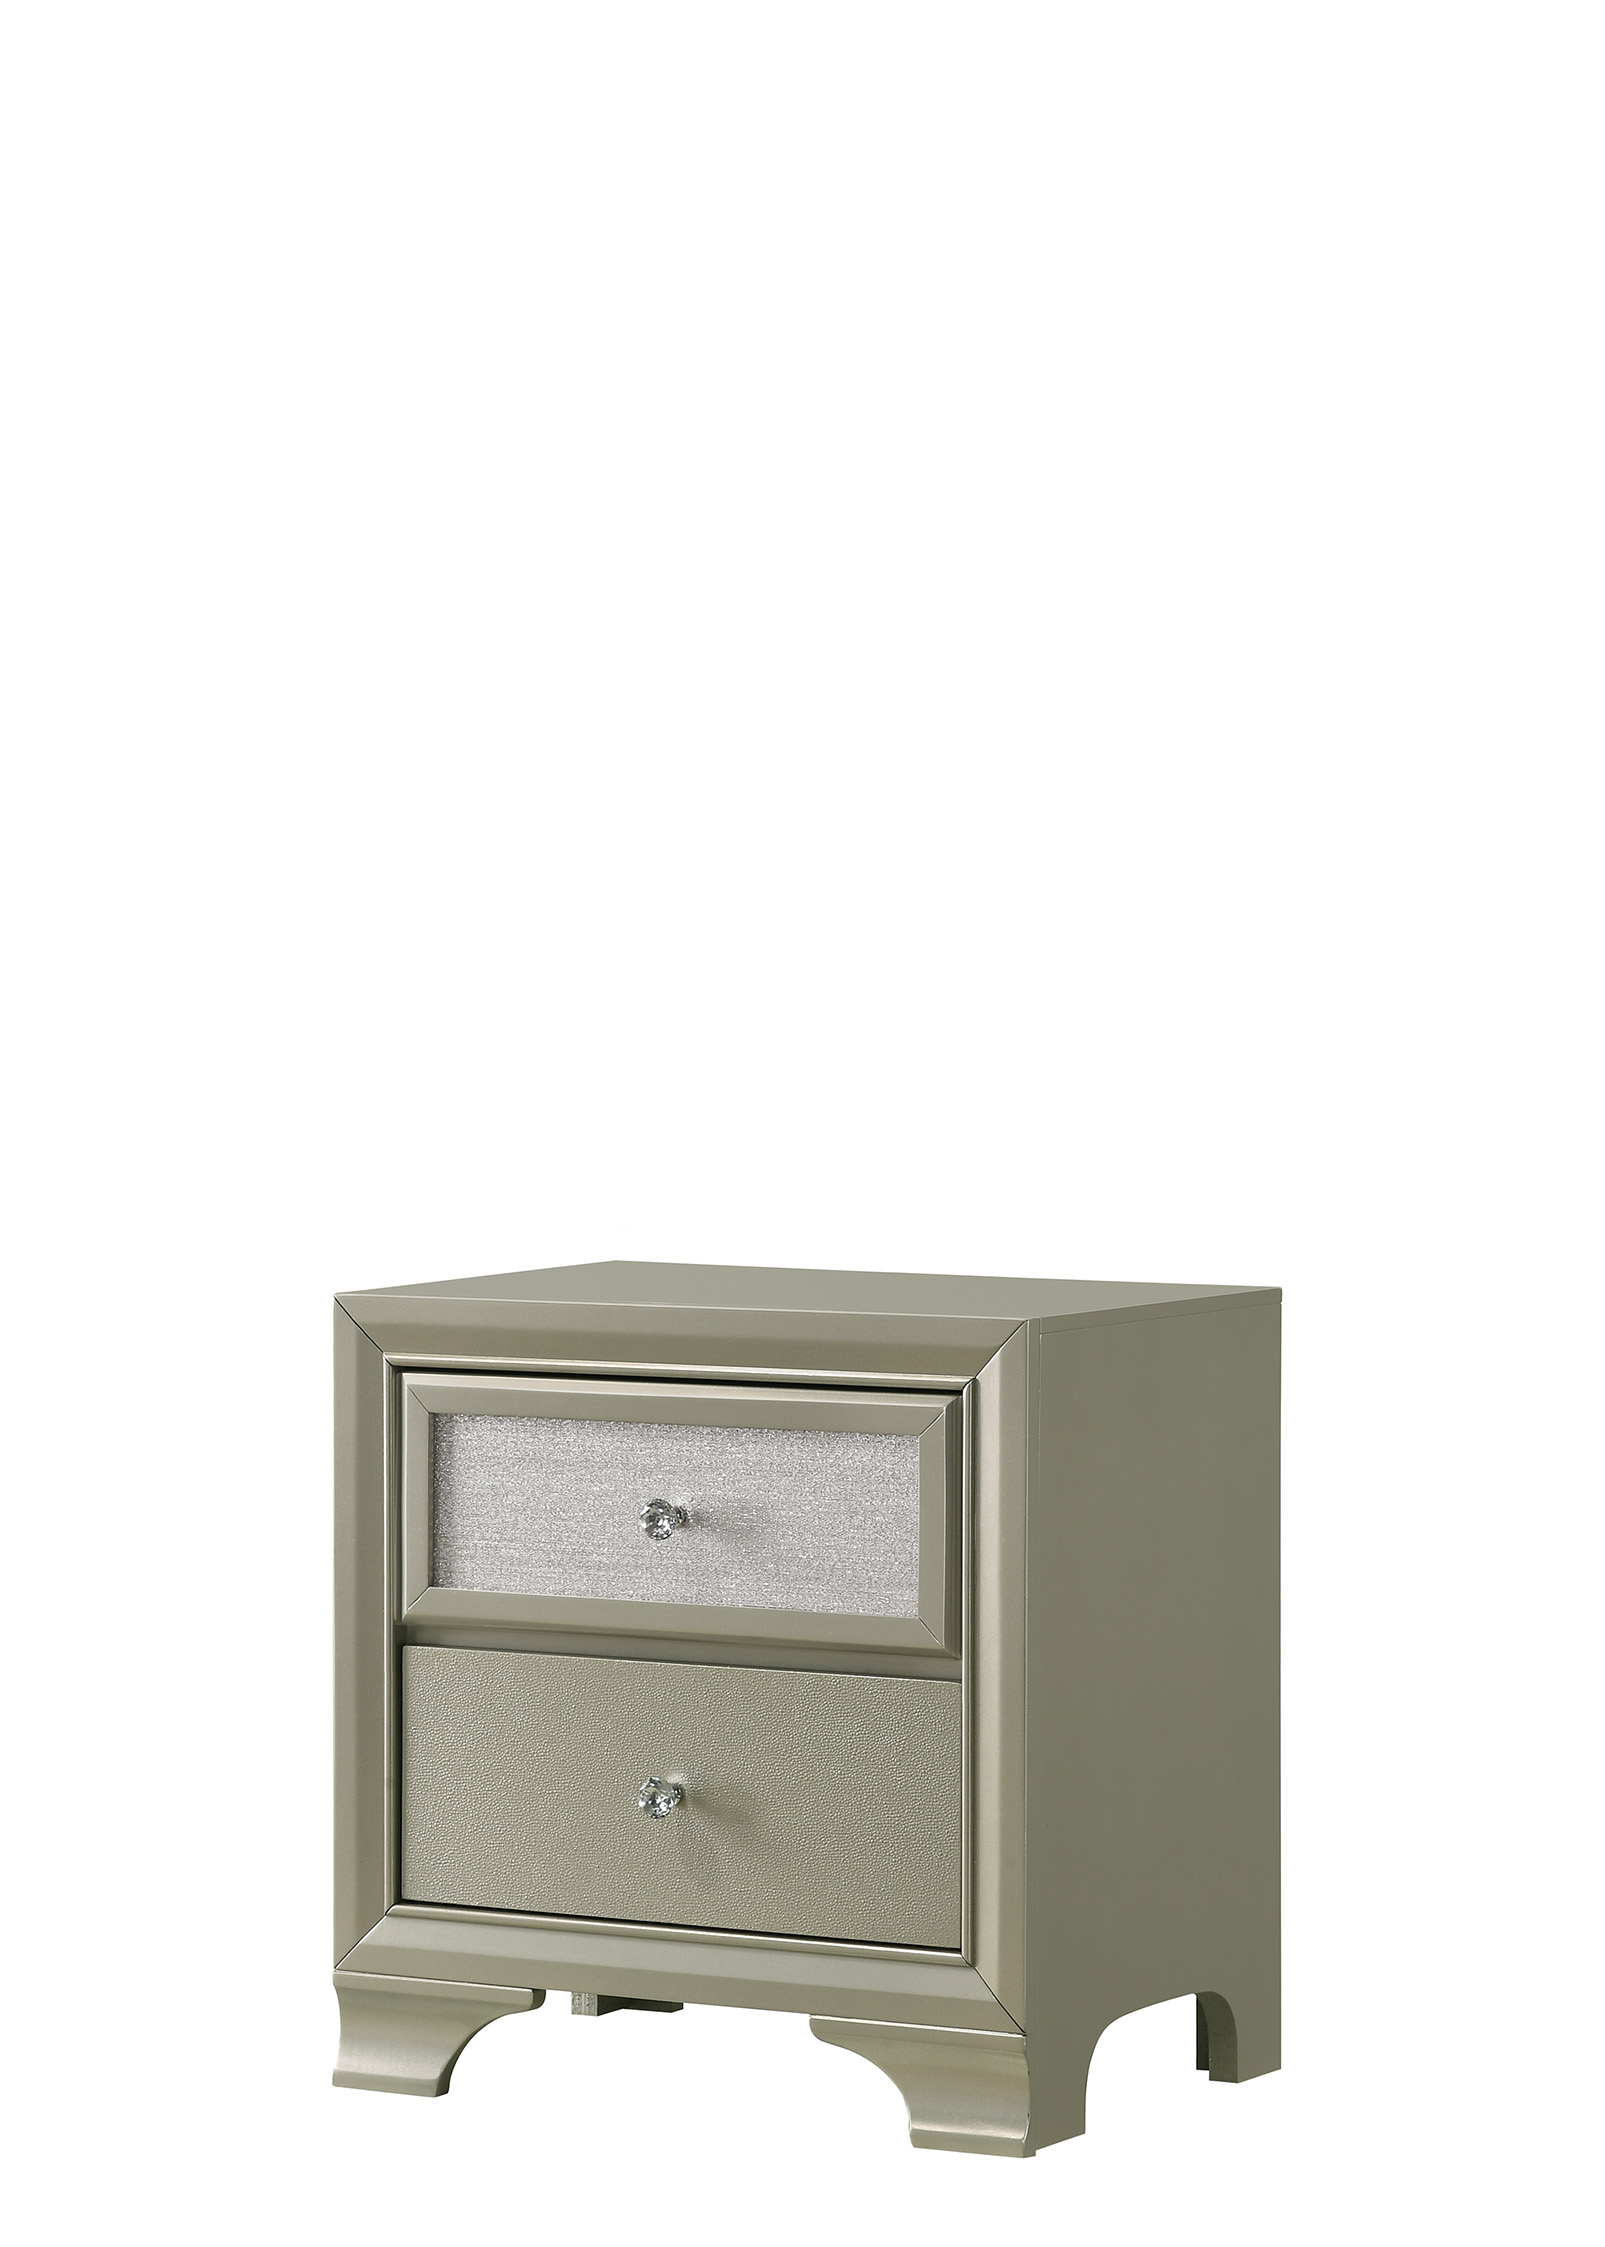 Landyn Nightstand by Crown Mark at Dream Home Interiors